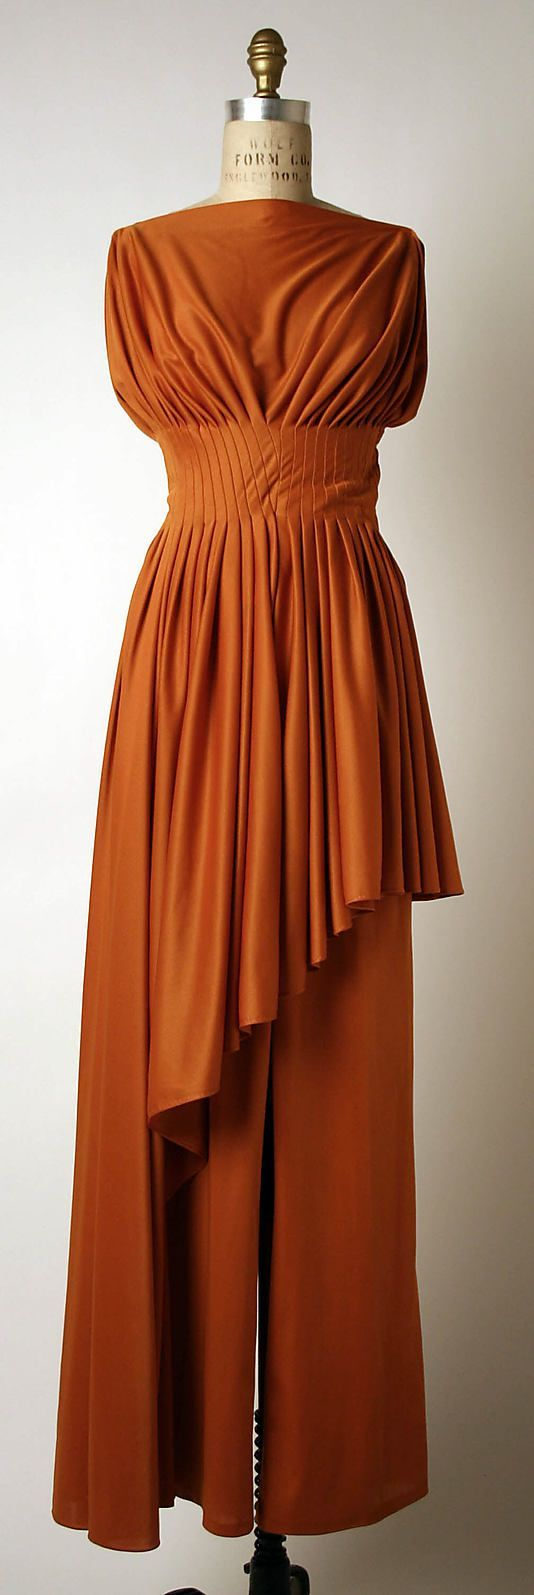 Madame Gr猫s Pantsuit c. 1975. Wow. I was totally guessing the 1930s when I first saw this. And even though orange is a disastrous color for me to wear, I would've definitely worn this!